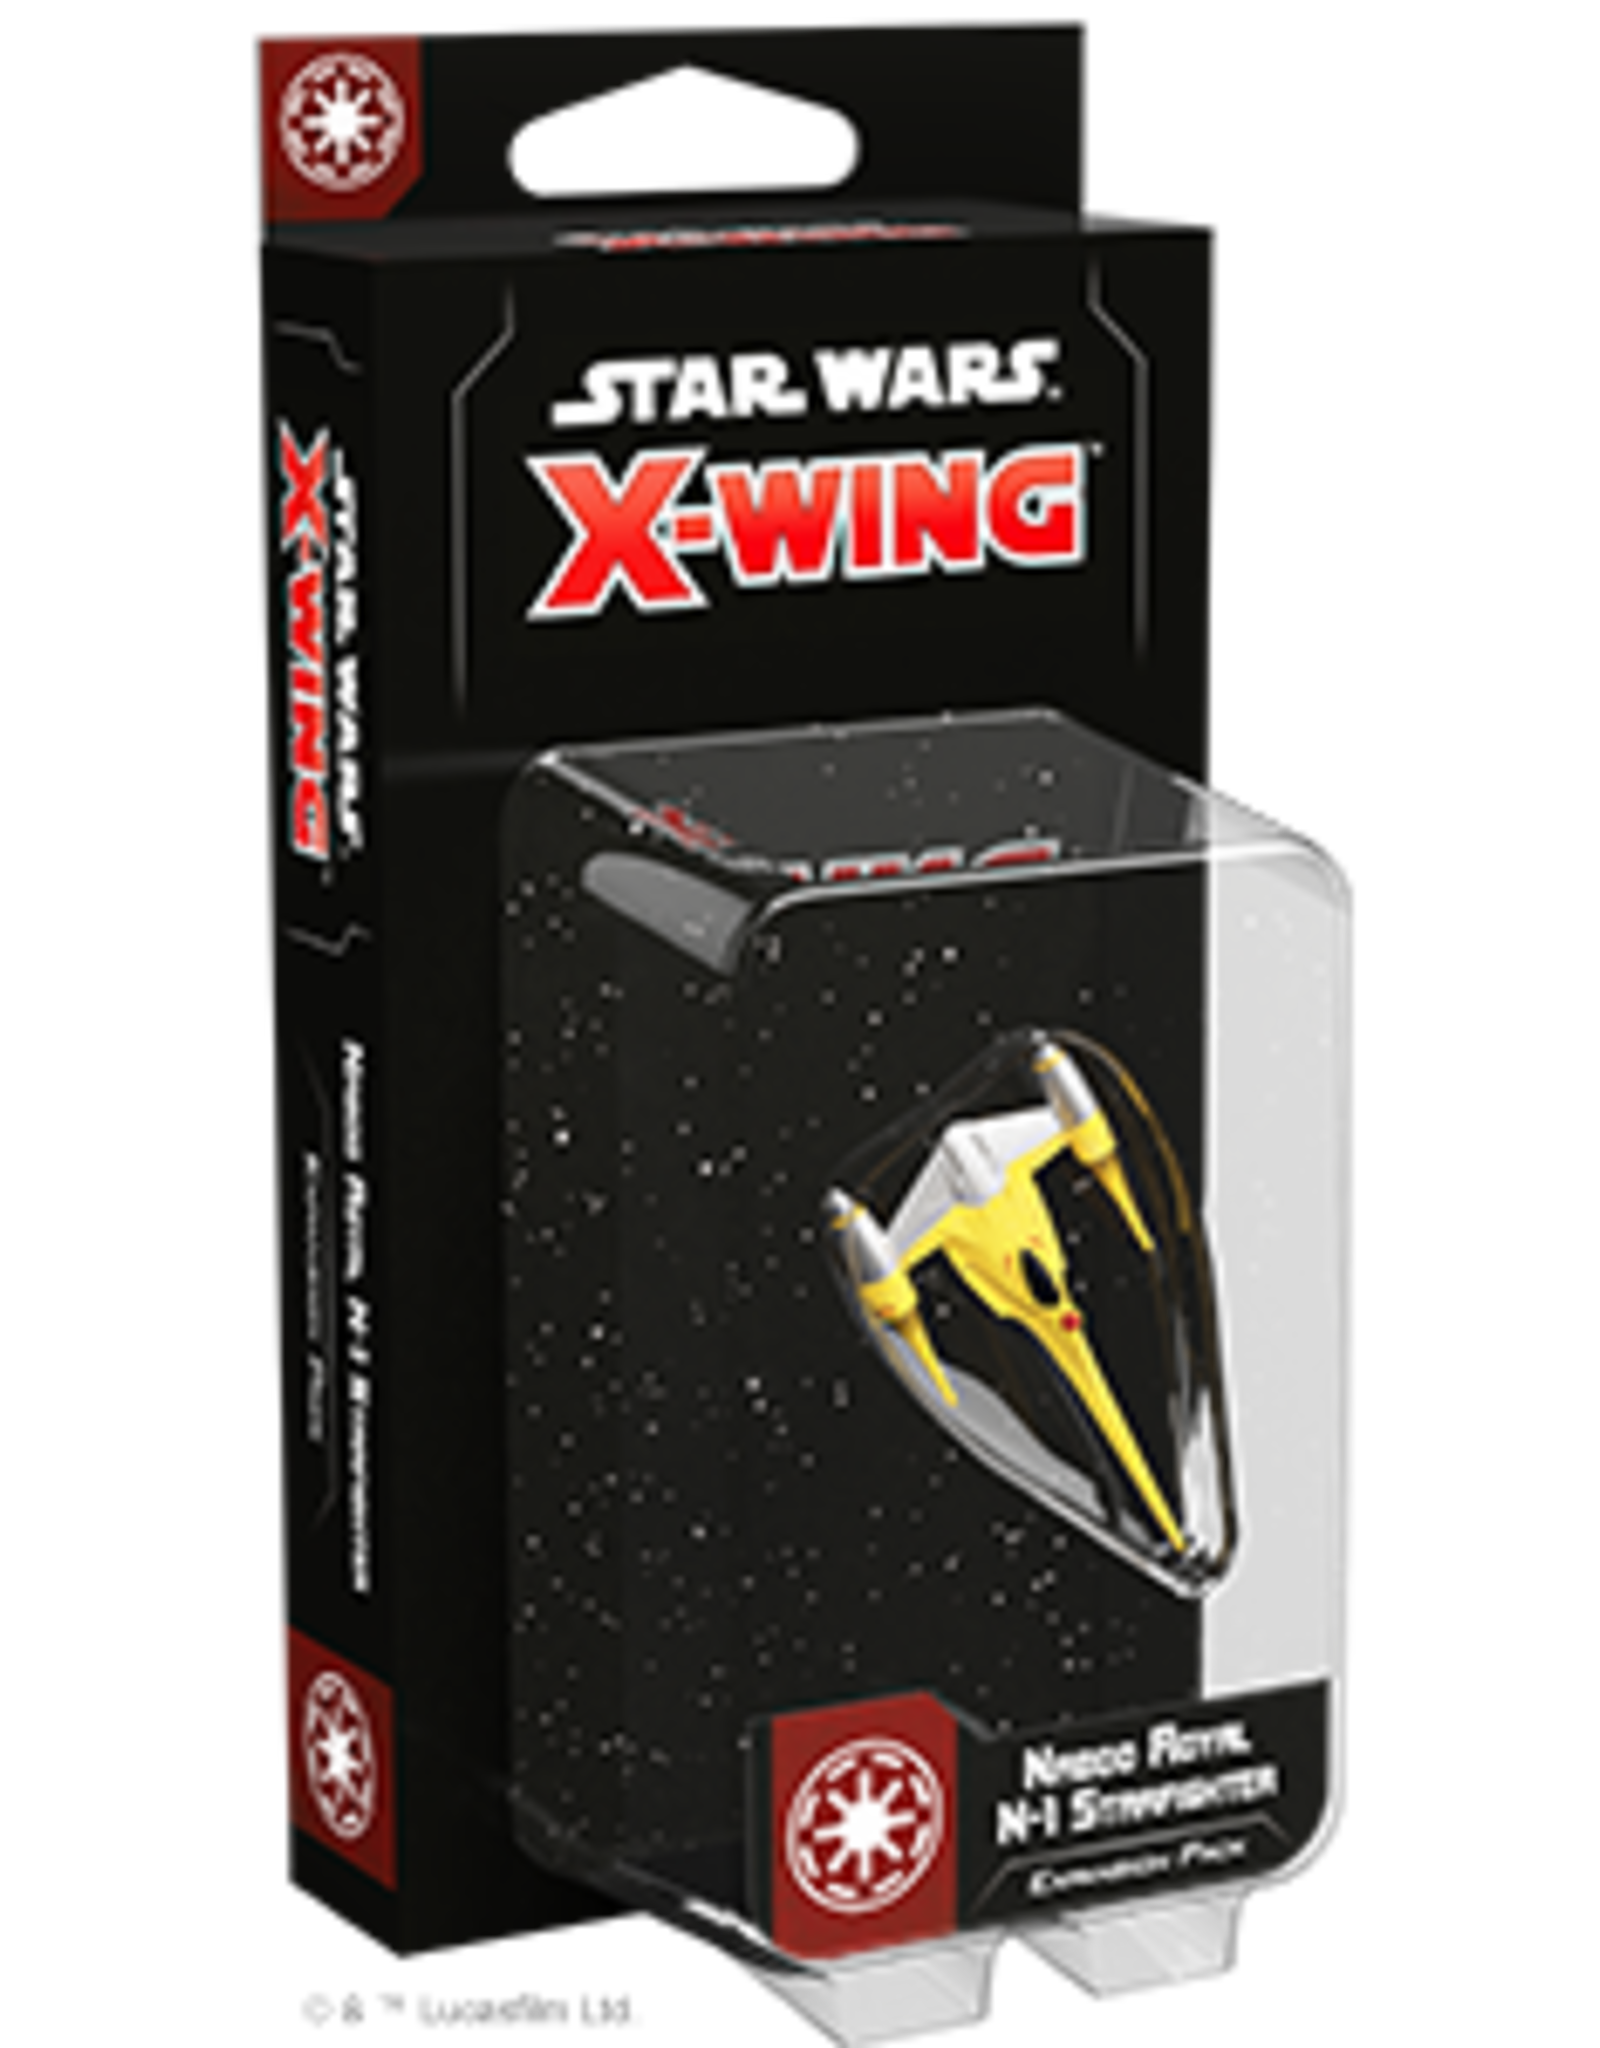 FFG Star Wars X-Wing 2.0: Naboo Royal N-1 Starfighter Expansion Pack